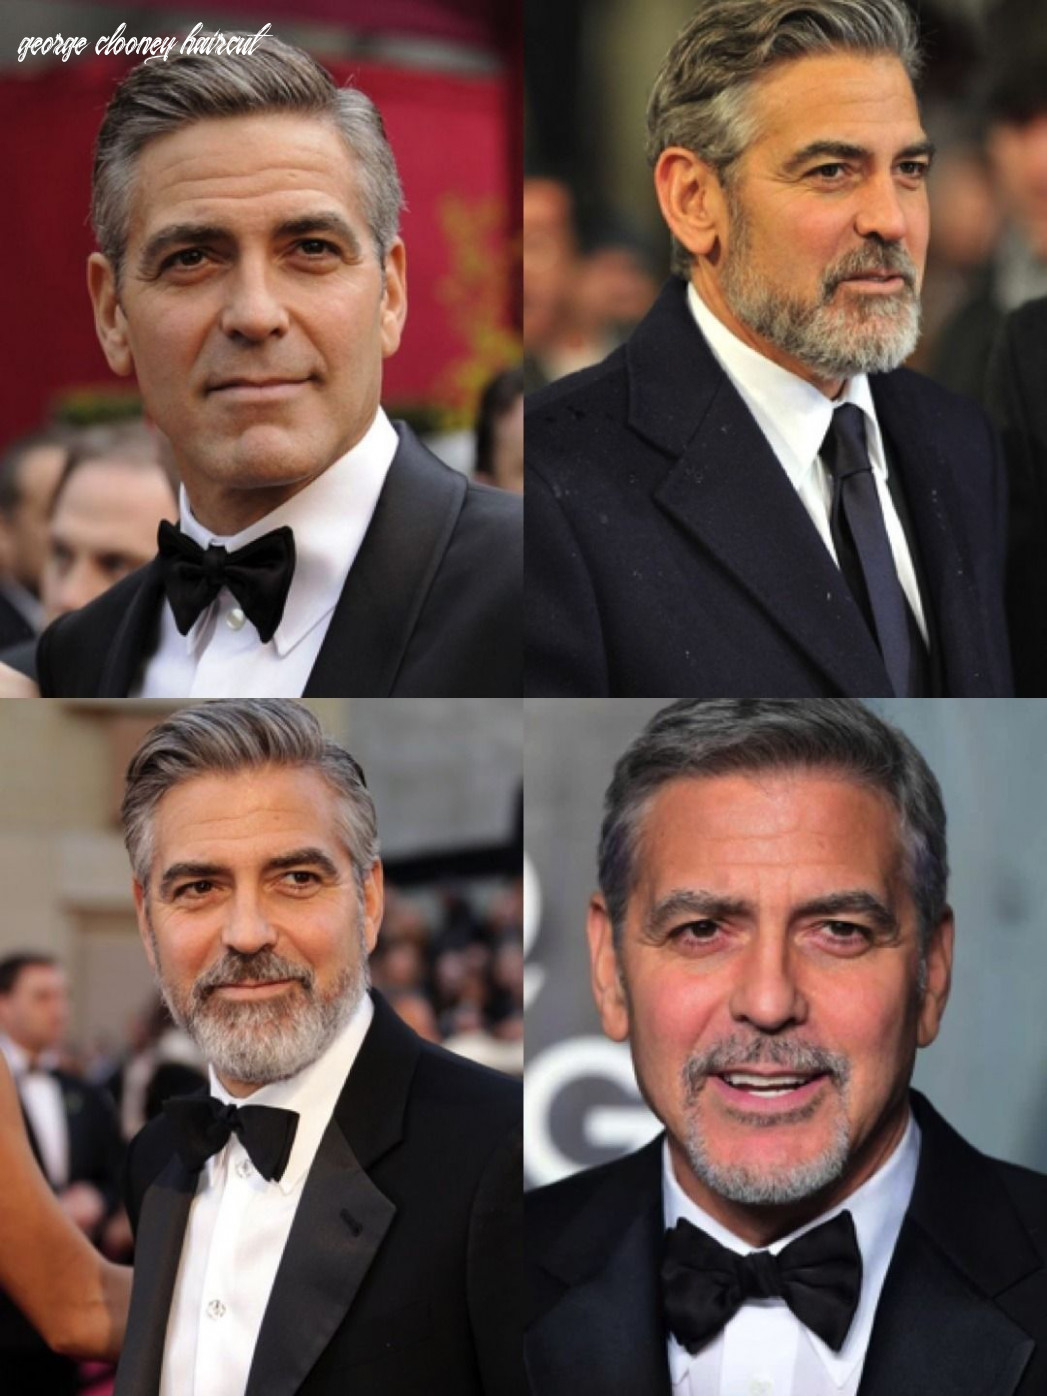 George clooney haircut: style it like clooney   george clooney